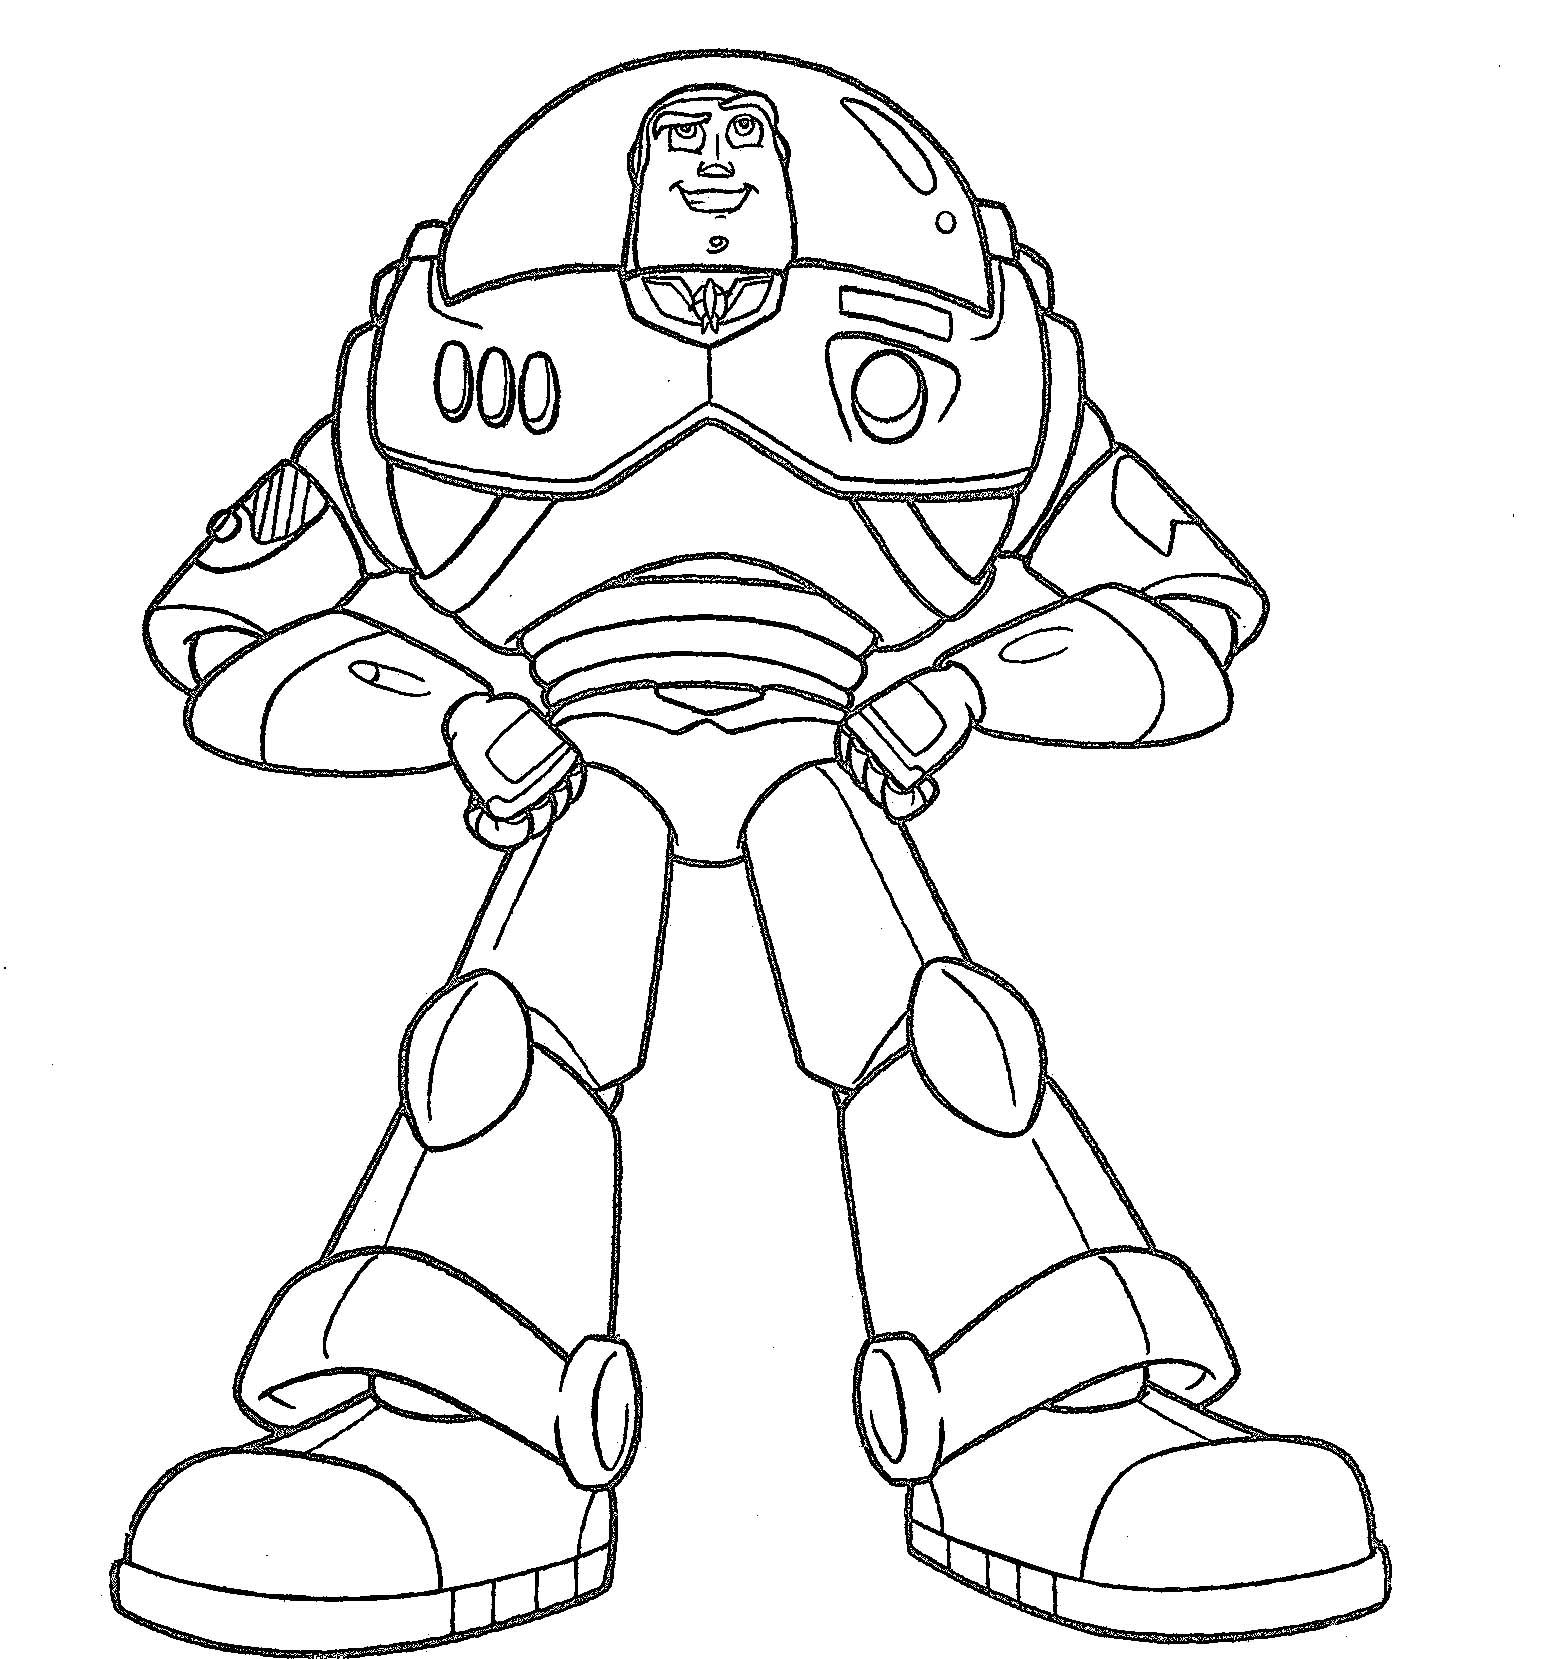 buzz lightyear for coloring buzz lightyear coloring pages coloring pages to print coloring lightyear buzz for